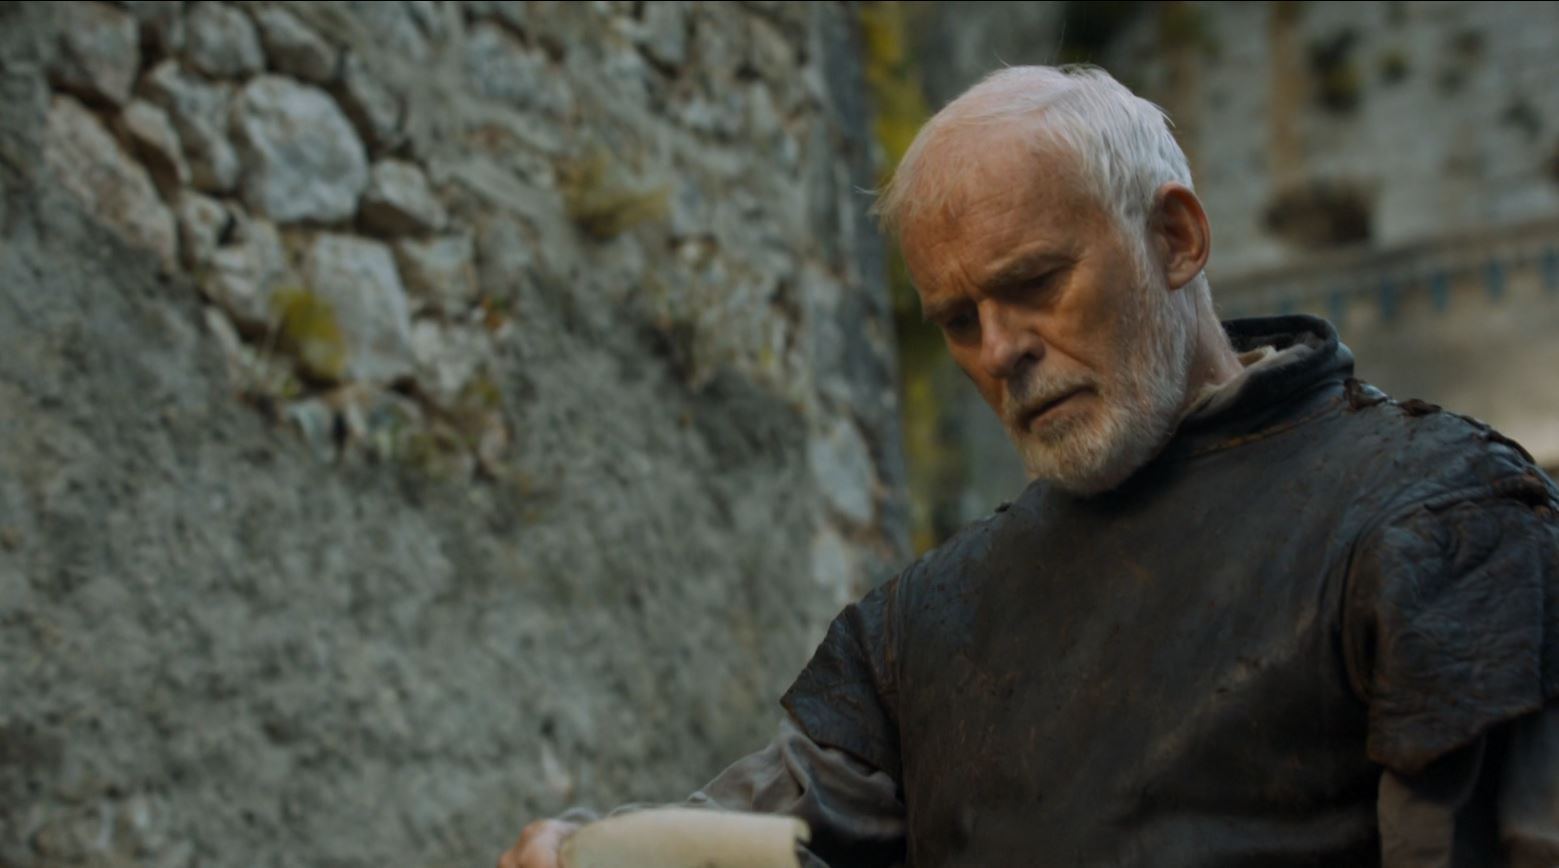 Game Of Thrones - Barristan Selmy recieves the pardon of Jorah Mormont Game of Thrones 'The Mountain and The Viper' Review http://scifiempire.net